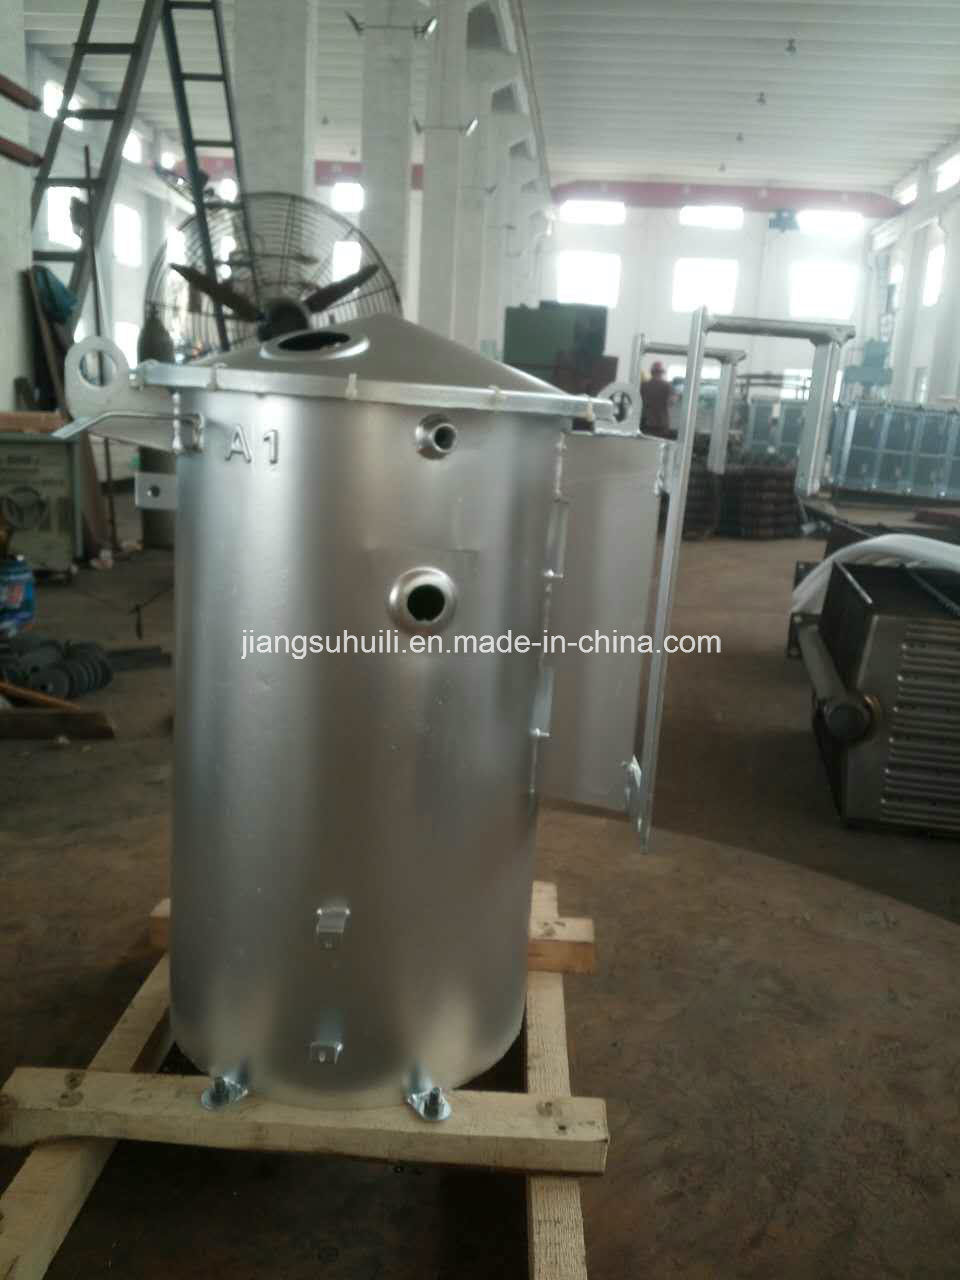 50 kVA Galvanised Transformer Round Tanks